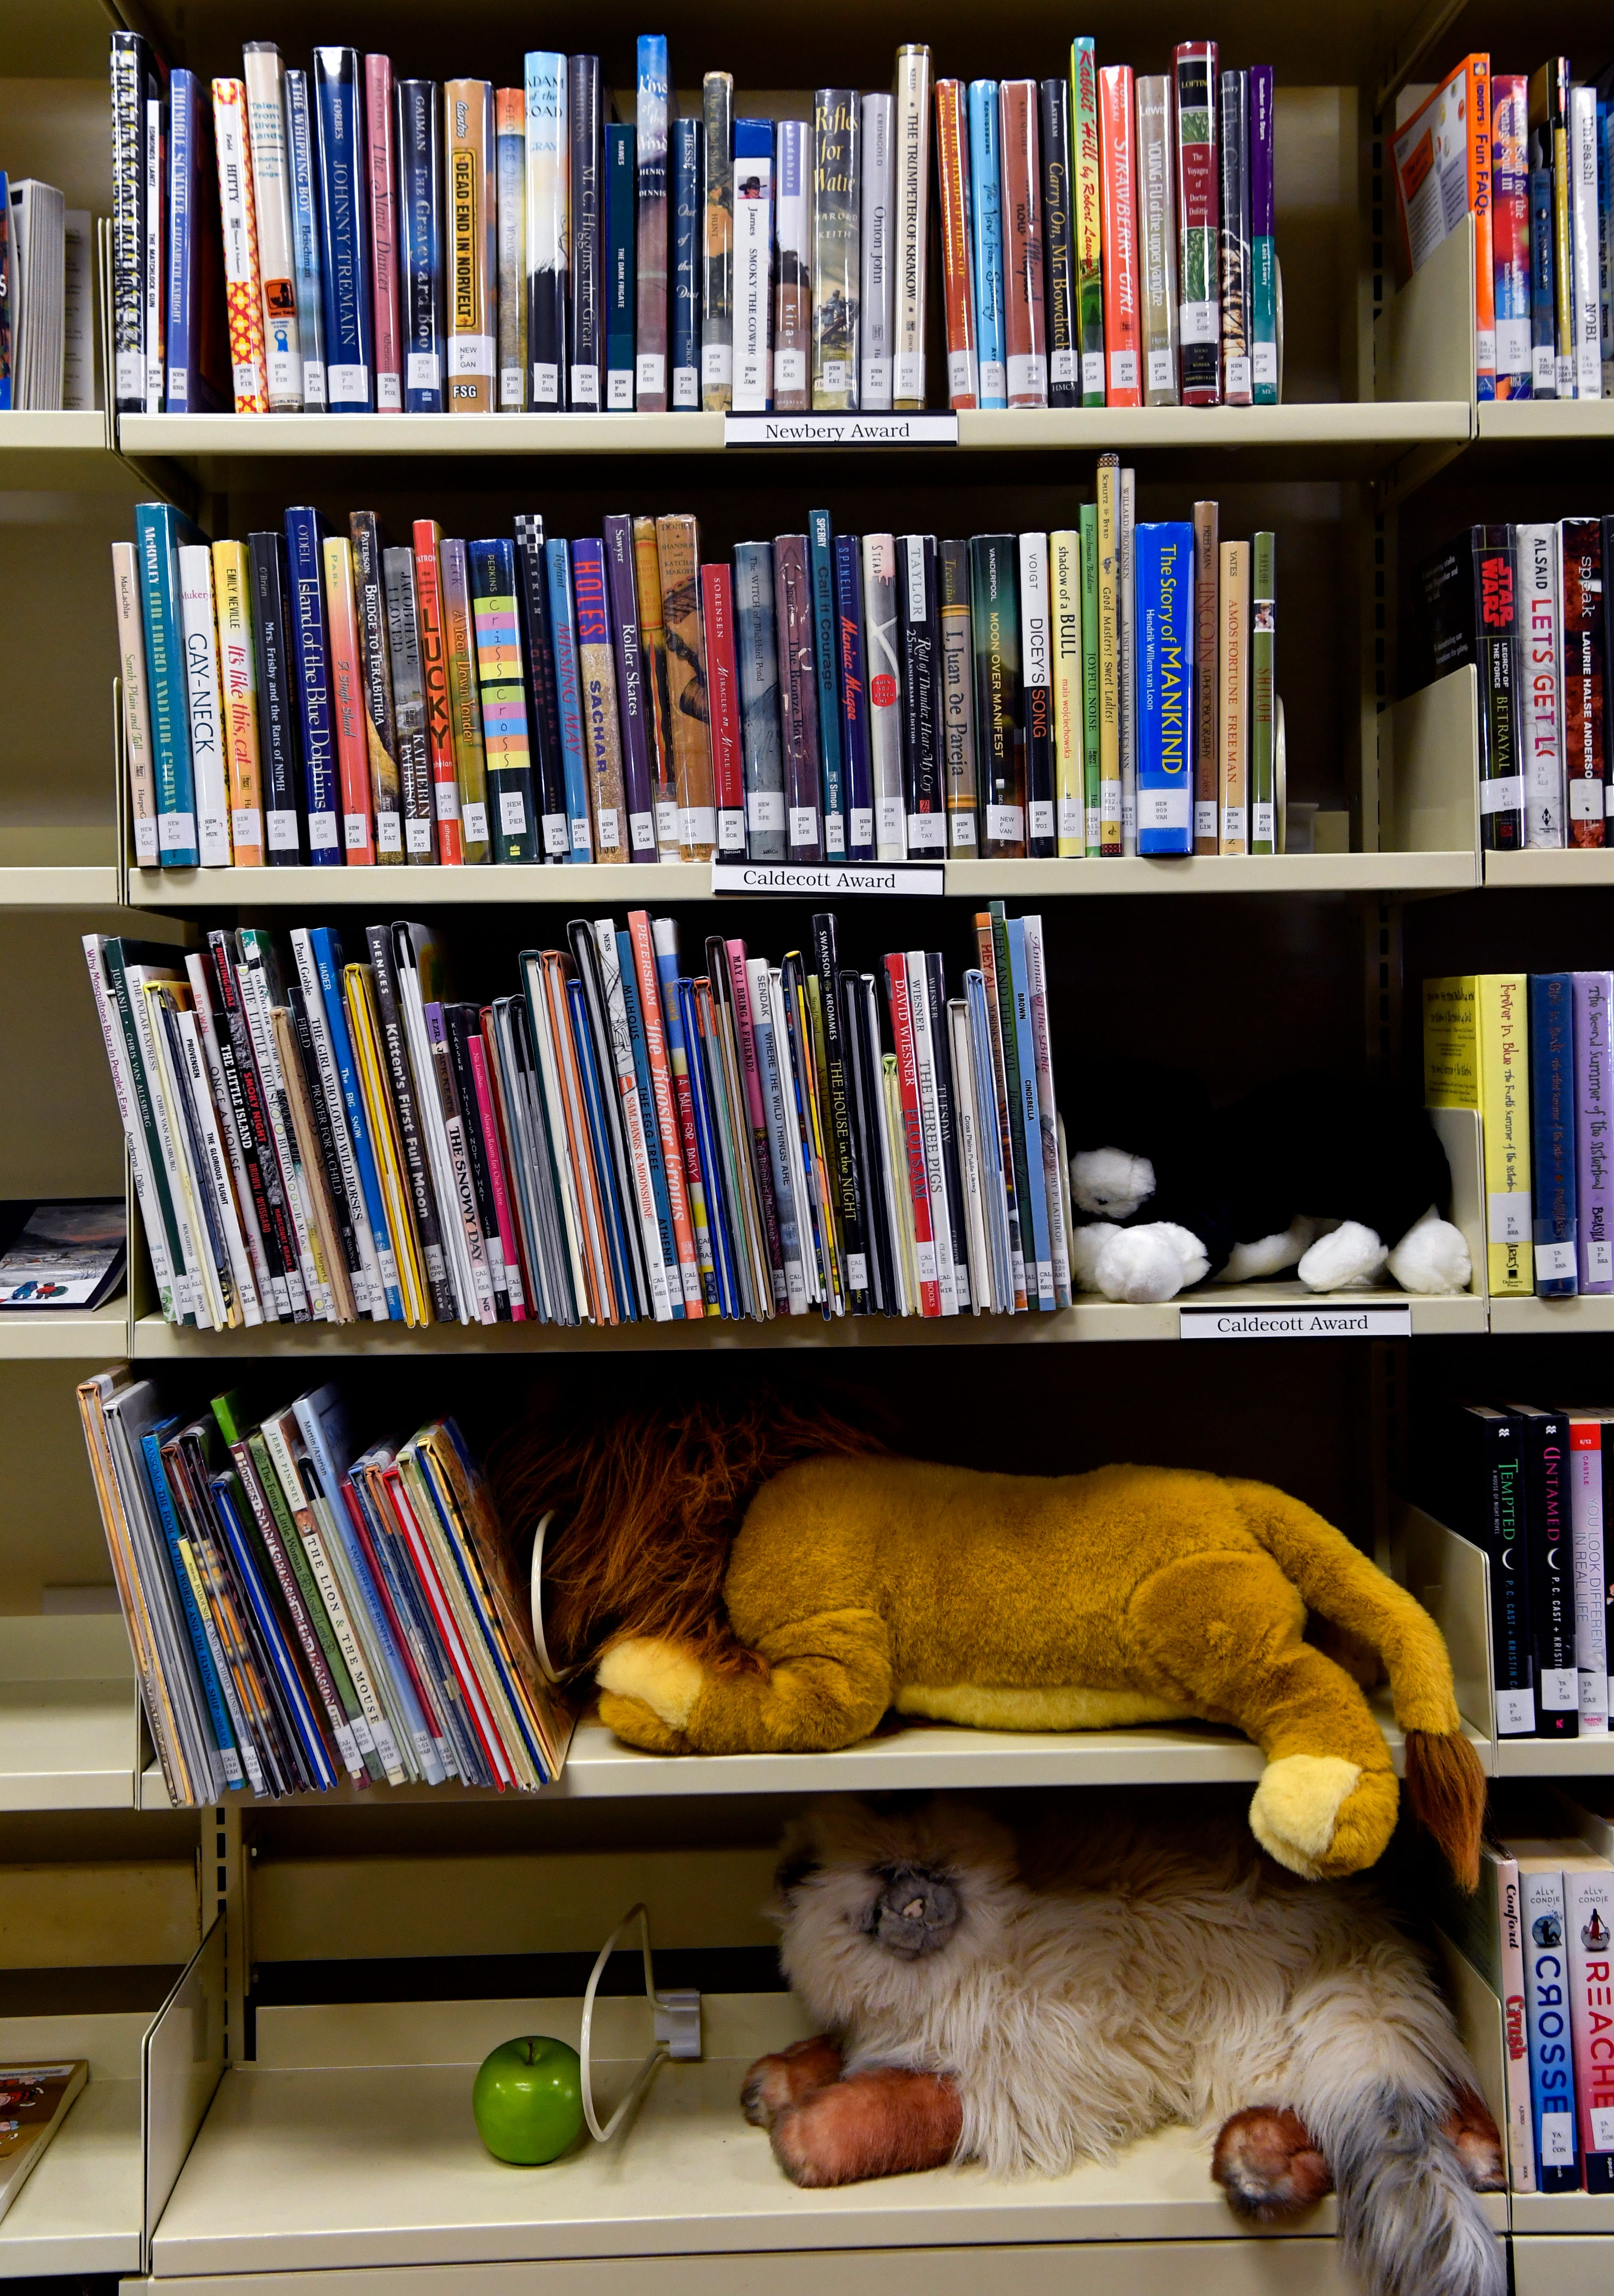 Plush toys share shelving space with children's books at the Cross Plains Public Library.